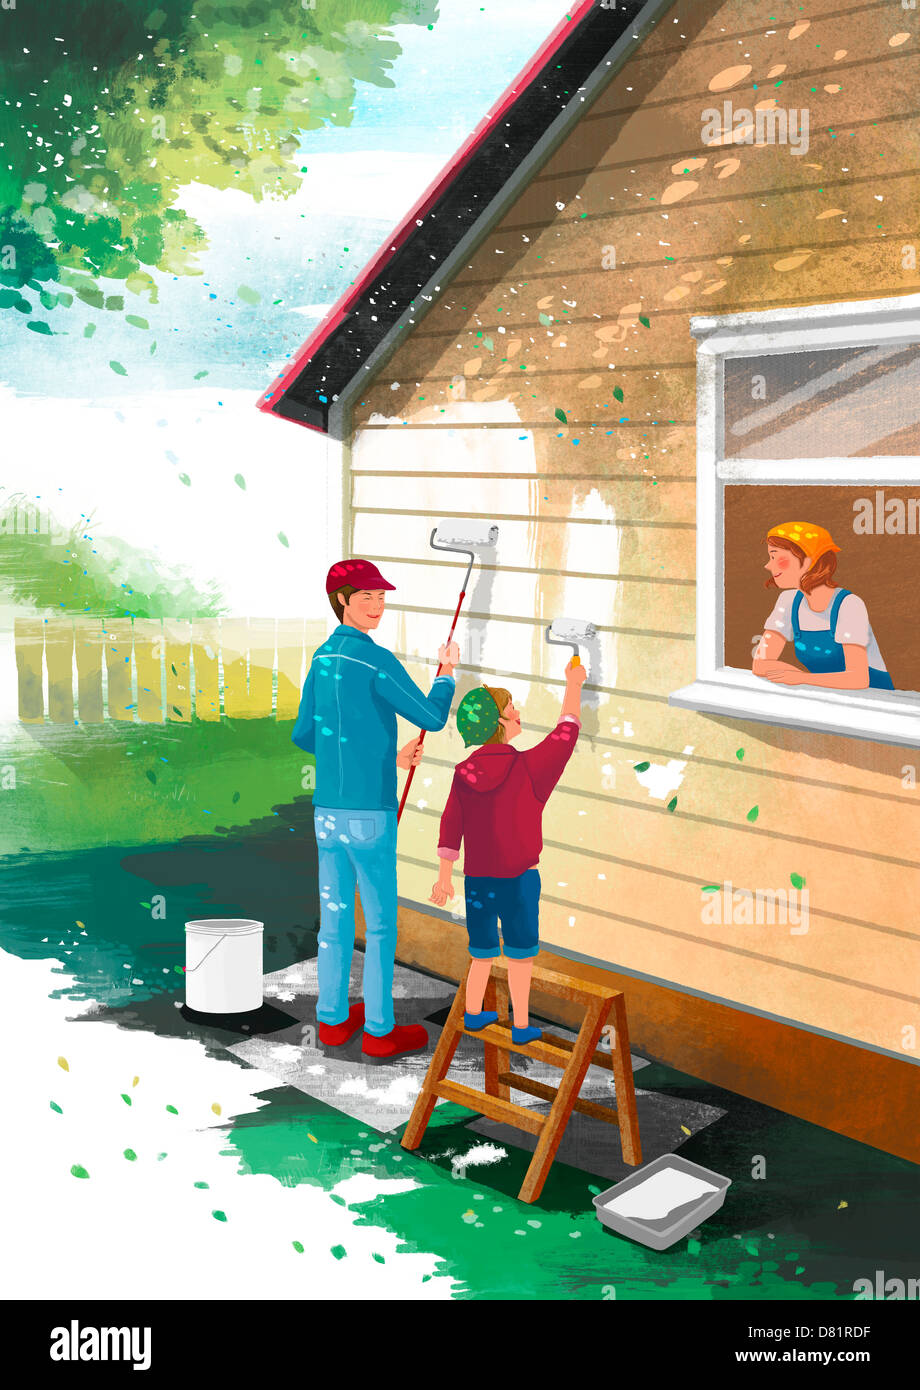 An Illustration Showing A Family Painting House